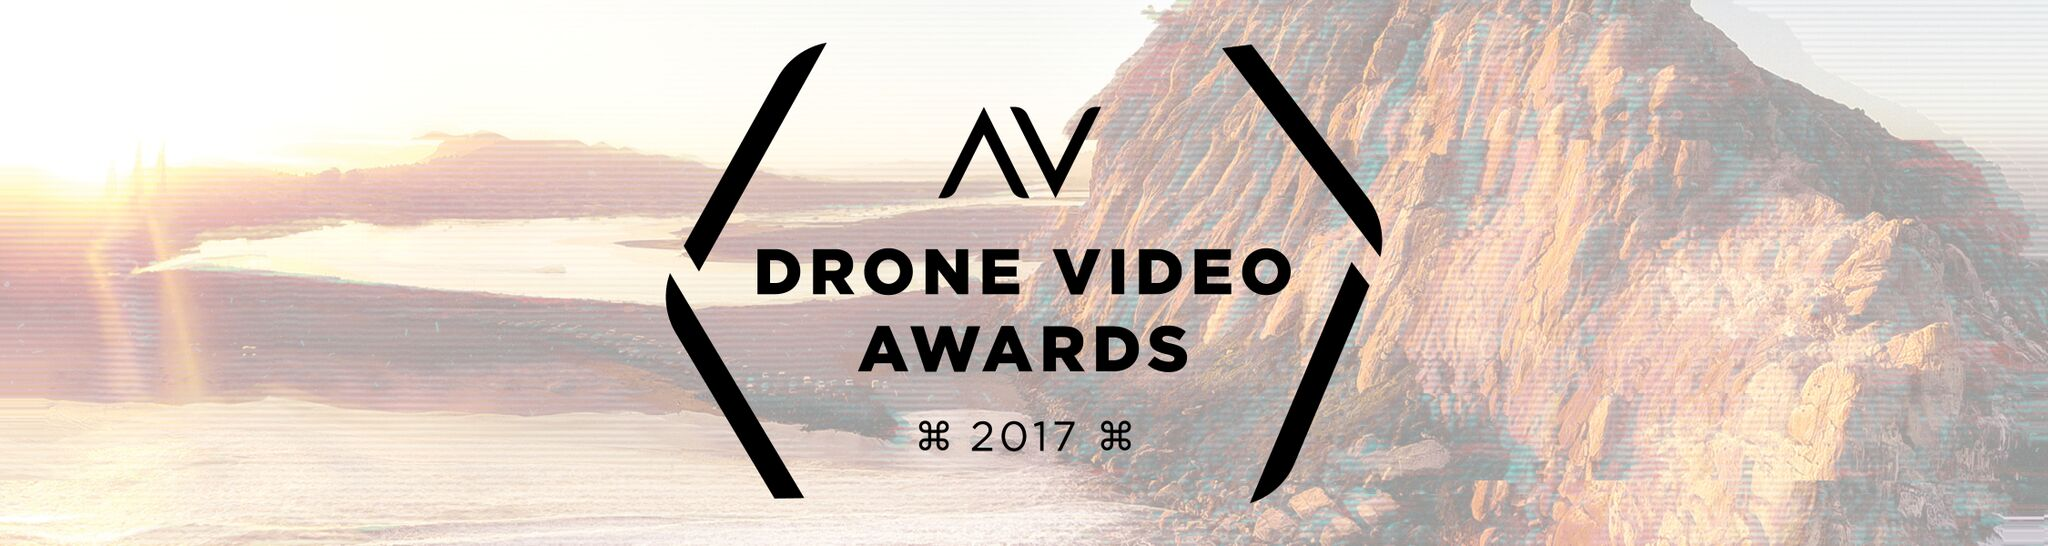 AirVūz Drone Video Awards header image